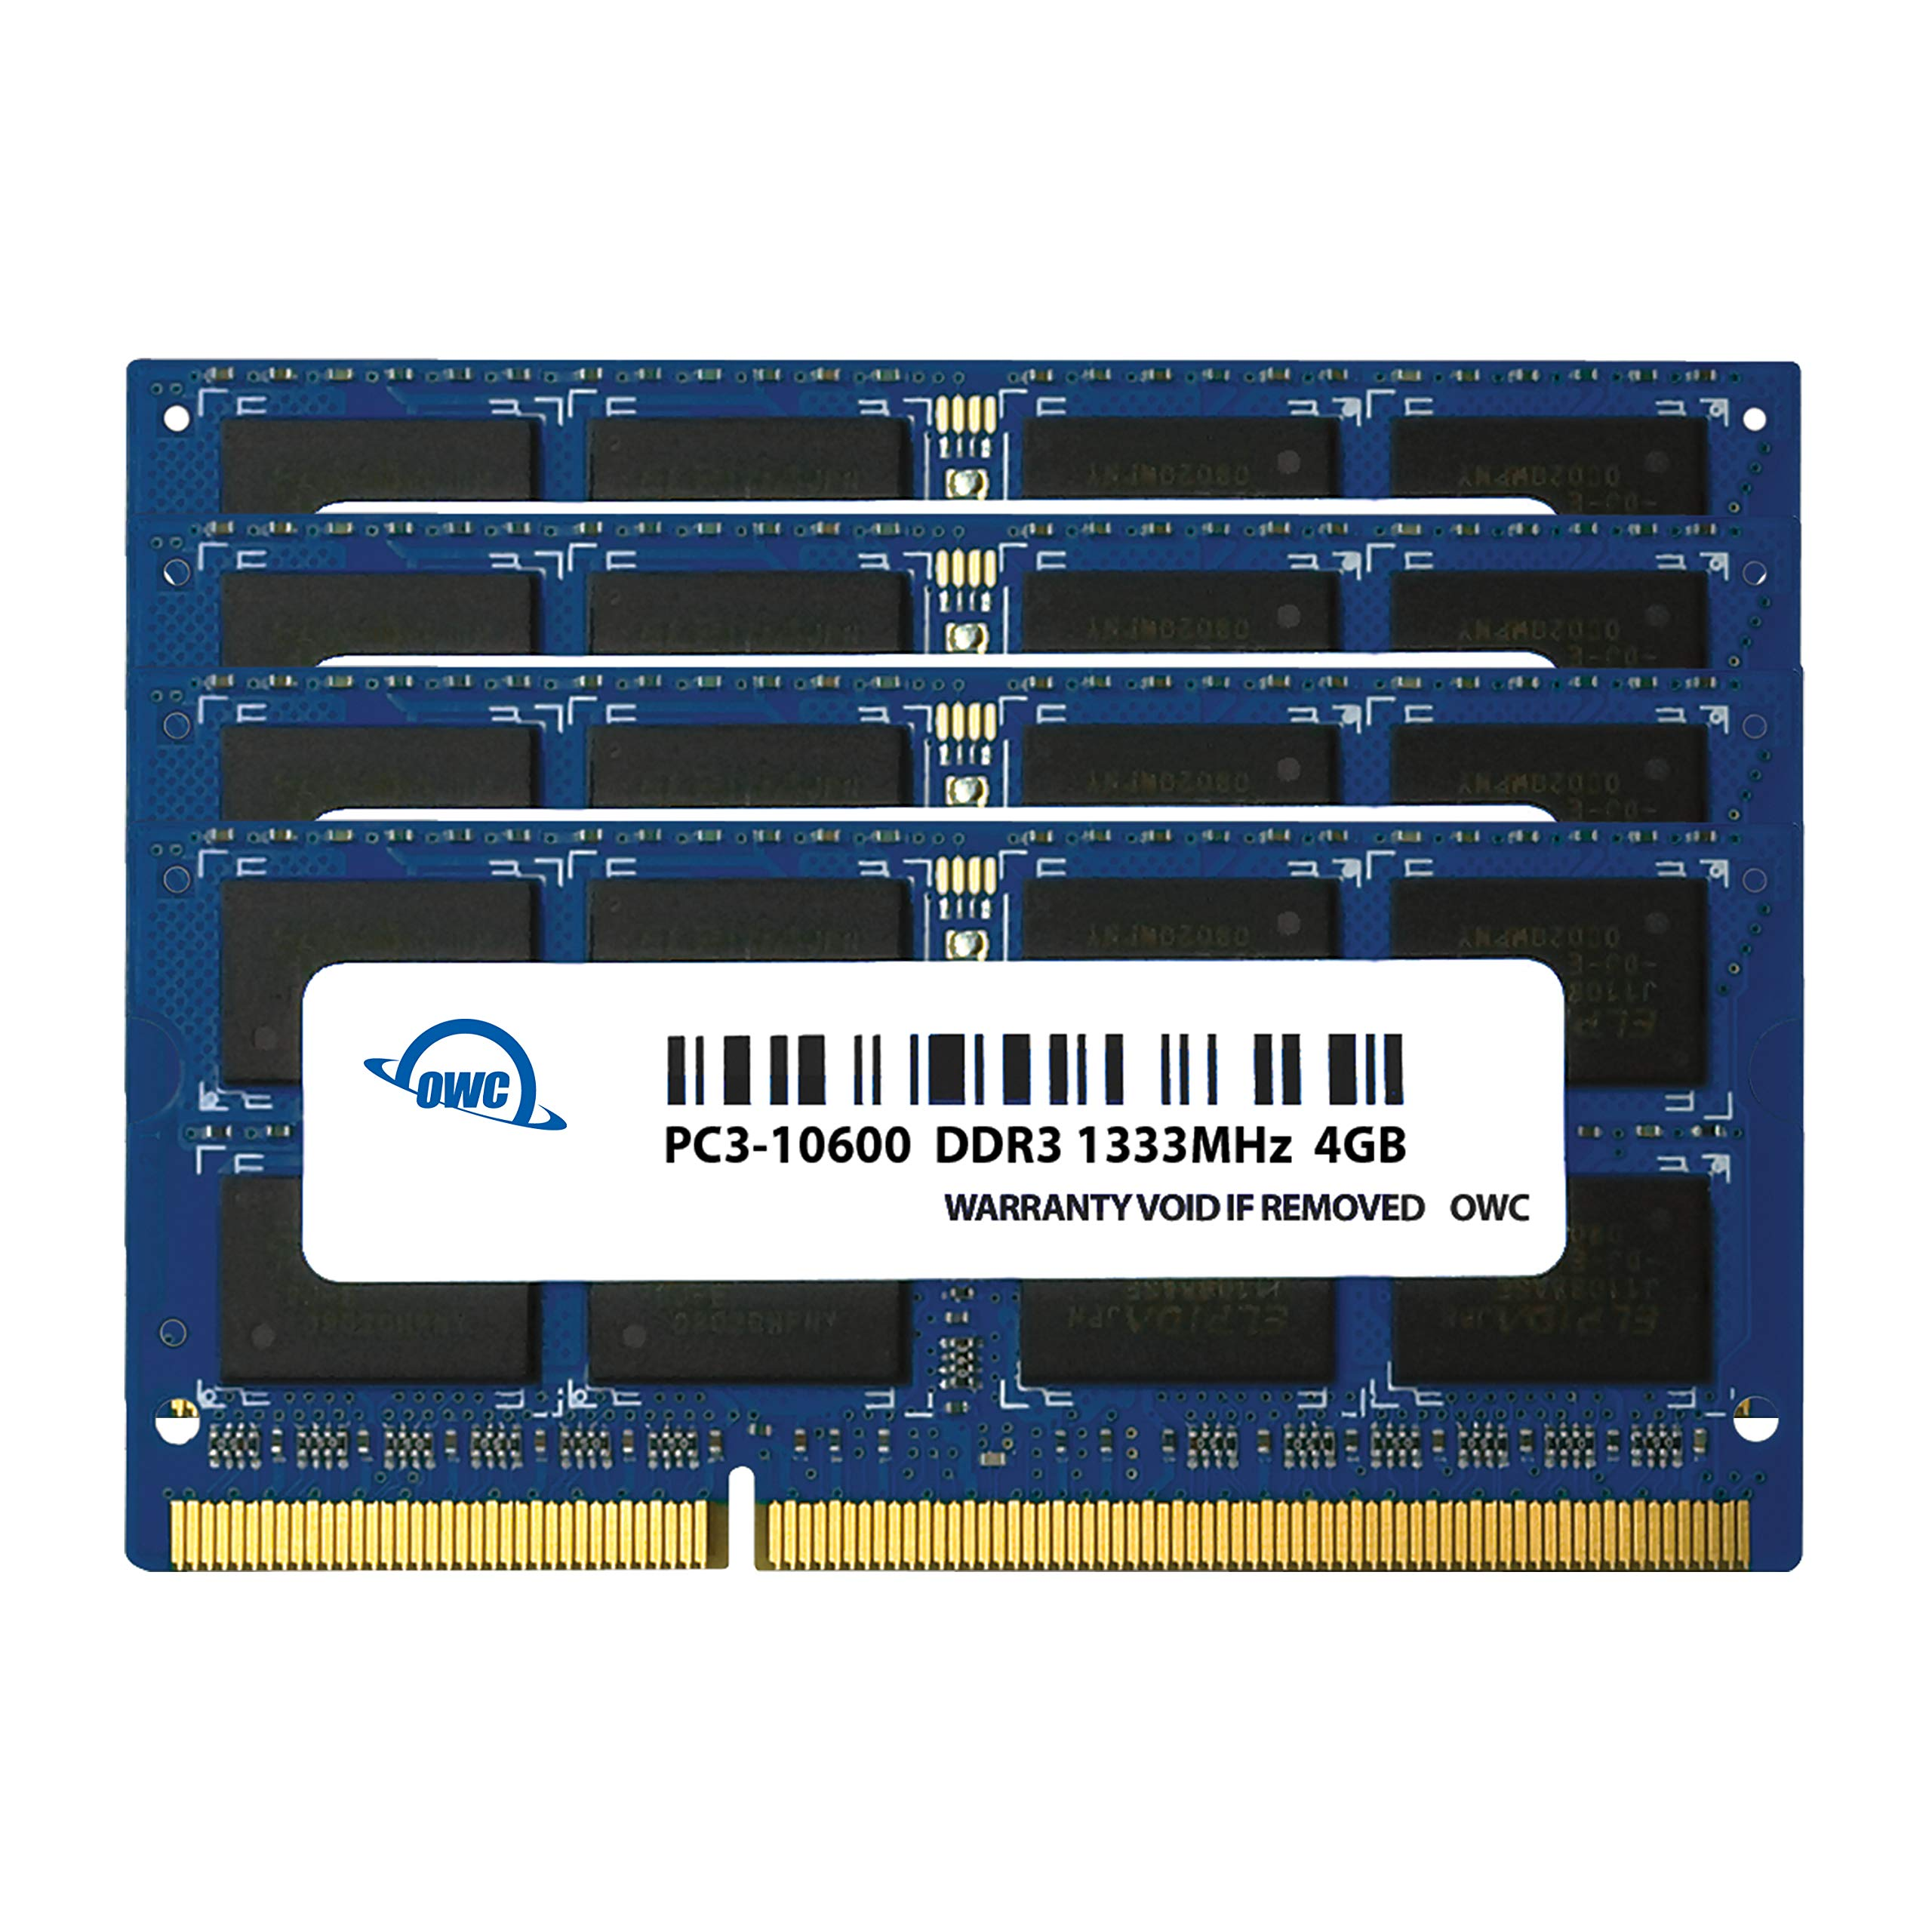 Memoria RAM 4GB OWC 16.0GB (4X ) 1333MHz 204-Pin DDR3 SO-DIMM PC3-10600 CL9 Upgrade Kit para iMac (OWC1333DDR3S16S)